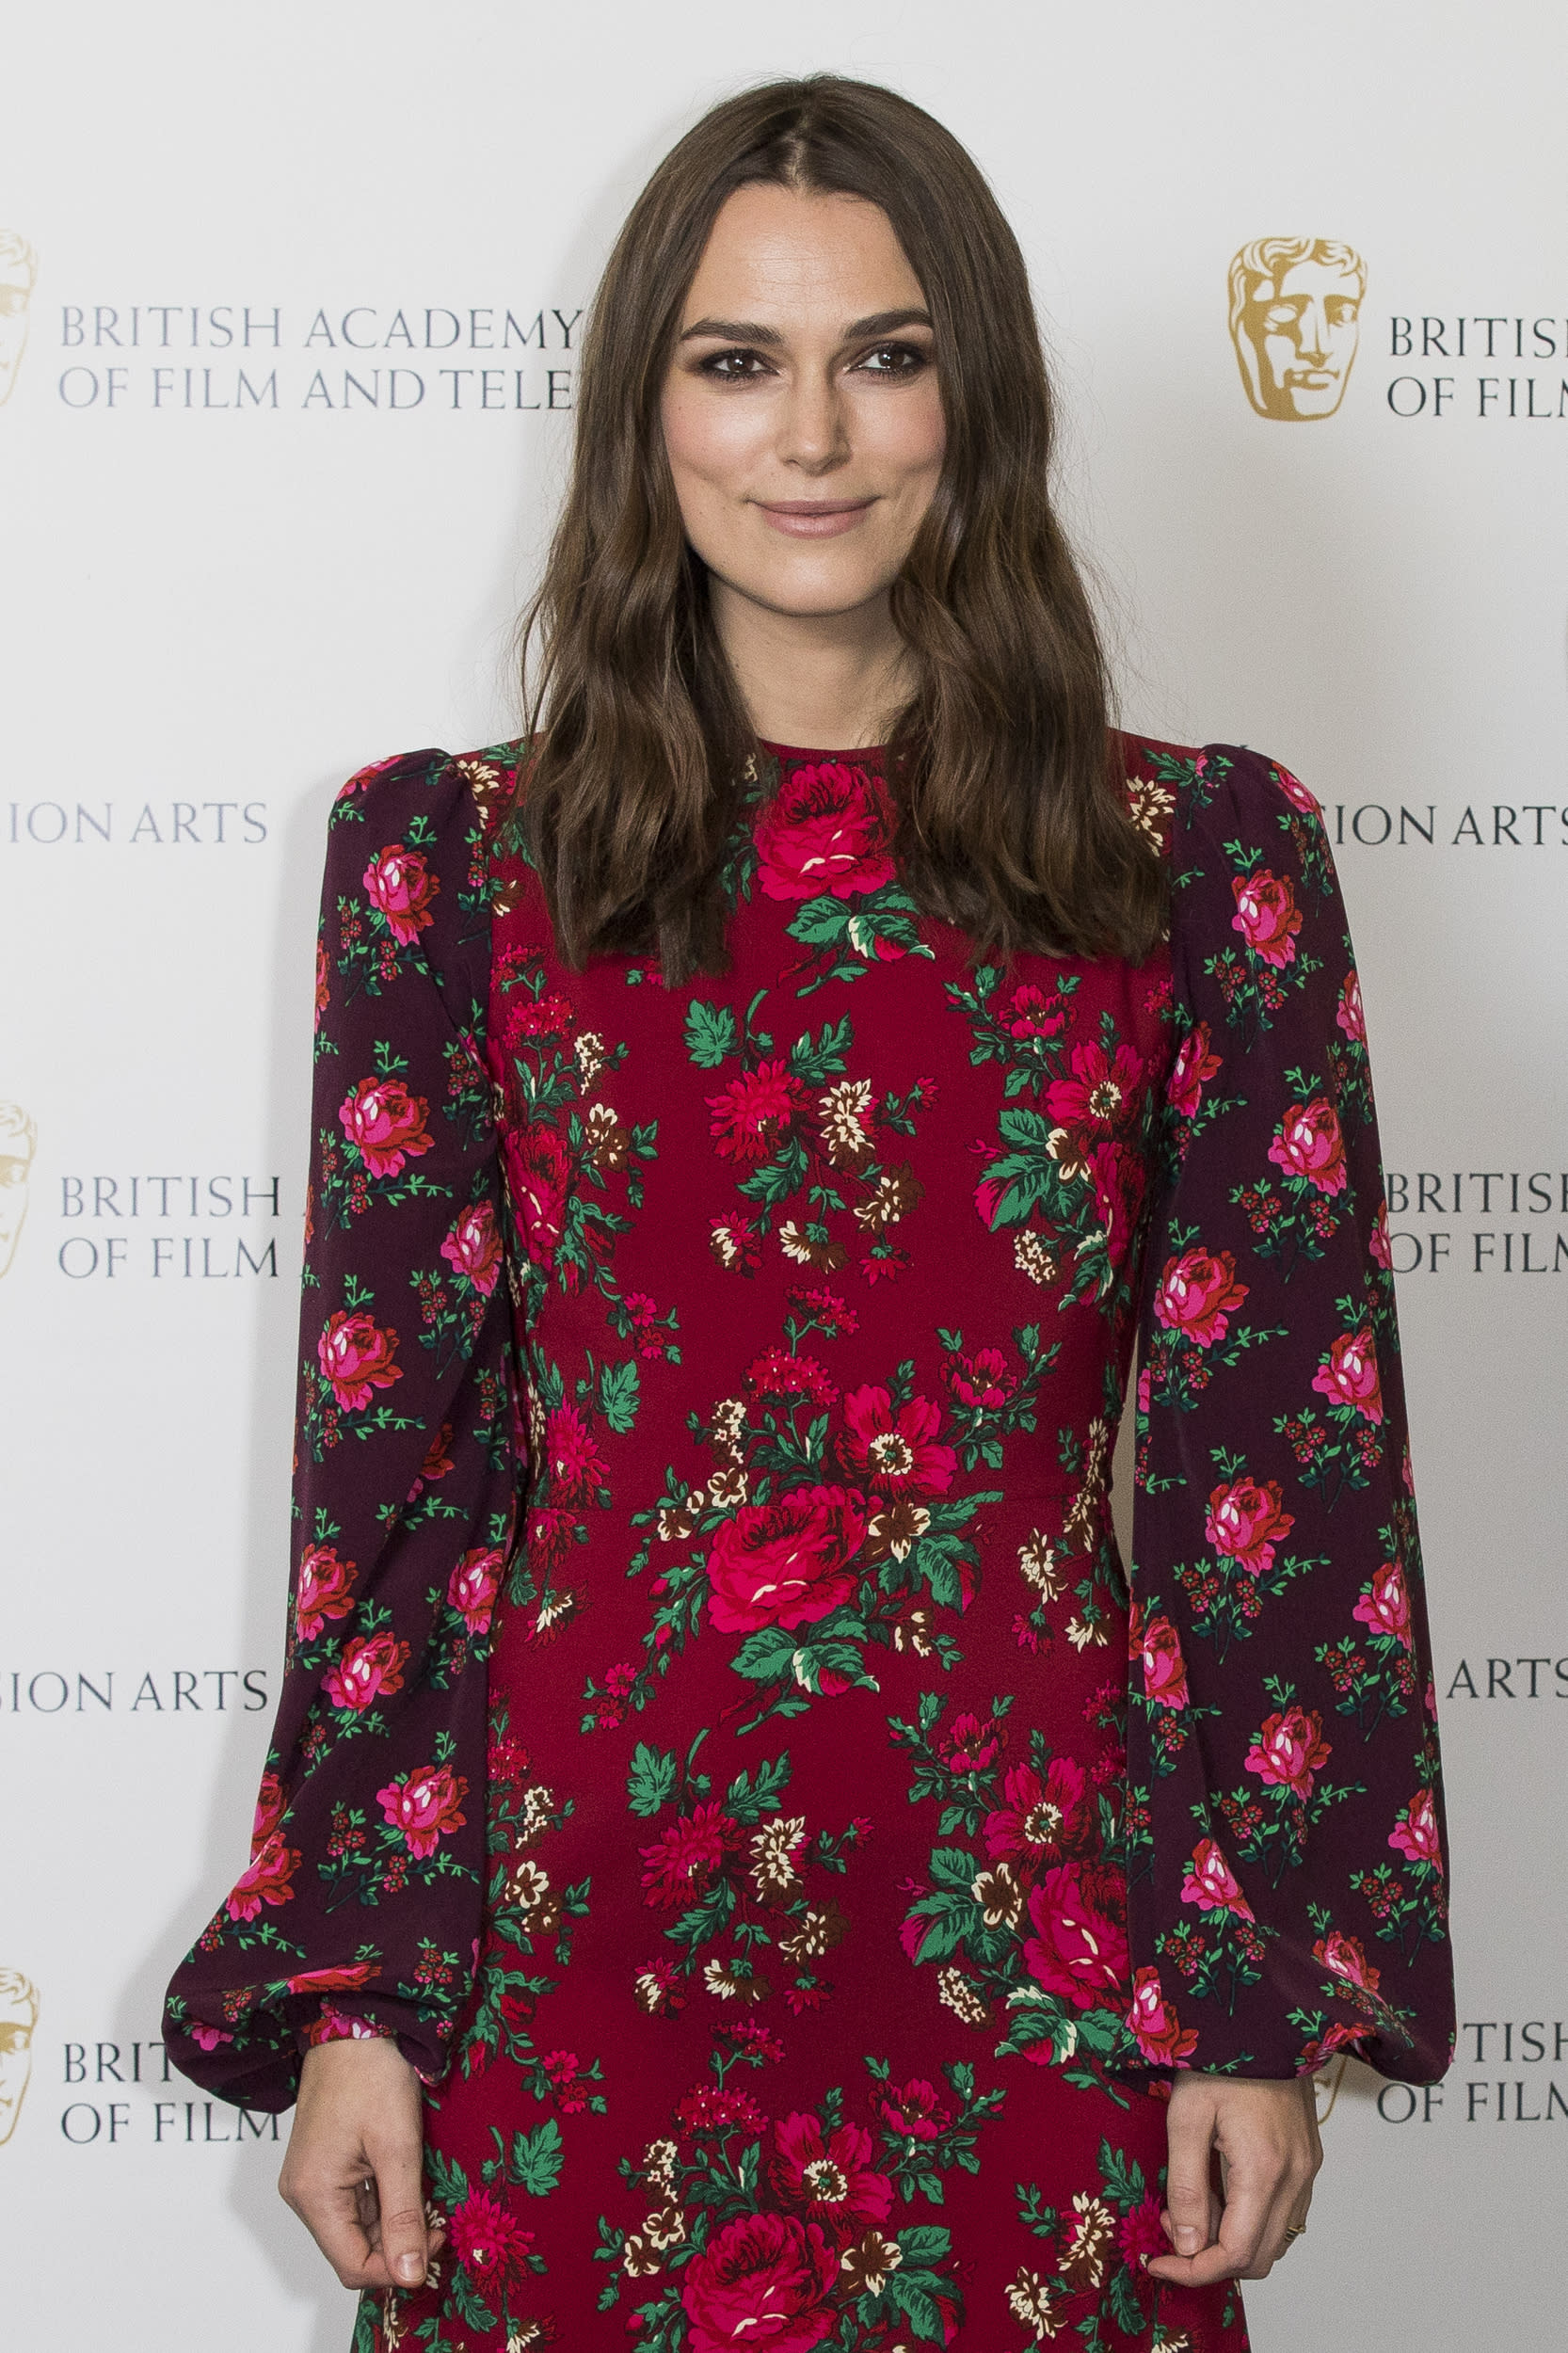 LONDON, ENGLAND - DECEMBER 17: Keira Knightley attends her 'A Life In Pictures' photocall at BAFTA on December 17, 2018 in London, England. (Photo by Tristan Fewings/Getty Images)